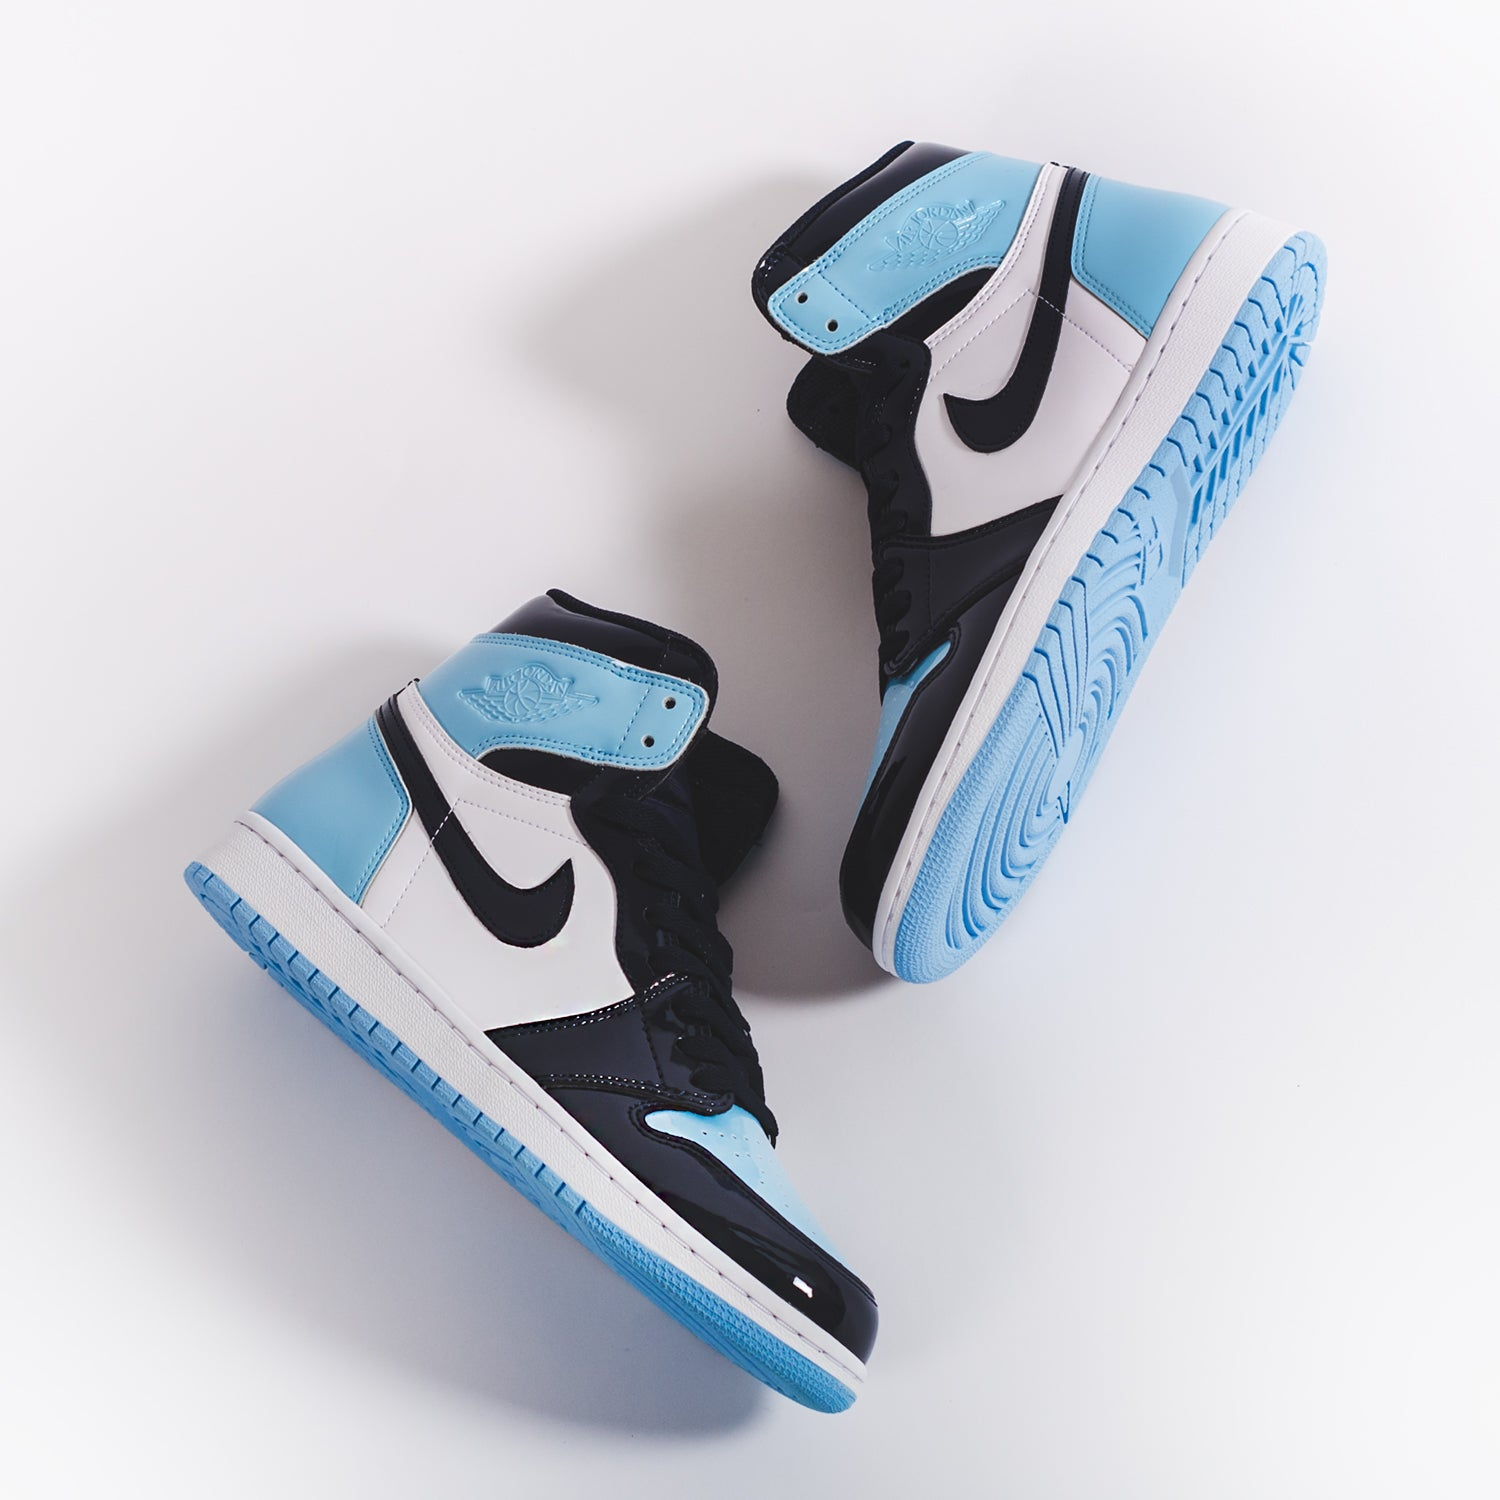 official photos 1b3c0 2b1f3 Women s Air Jordan 1 Retro High OG UNC CD0461-401   Chicago City Sports